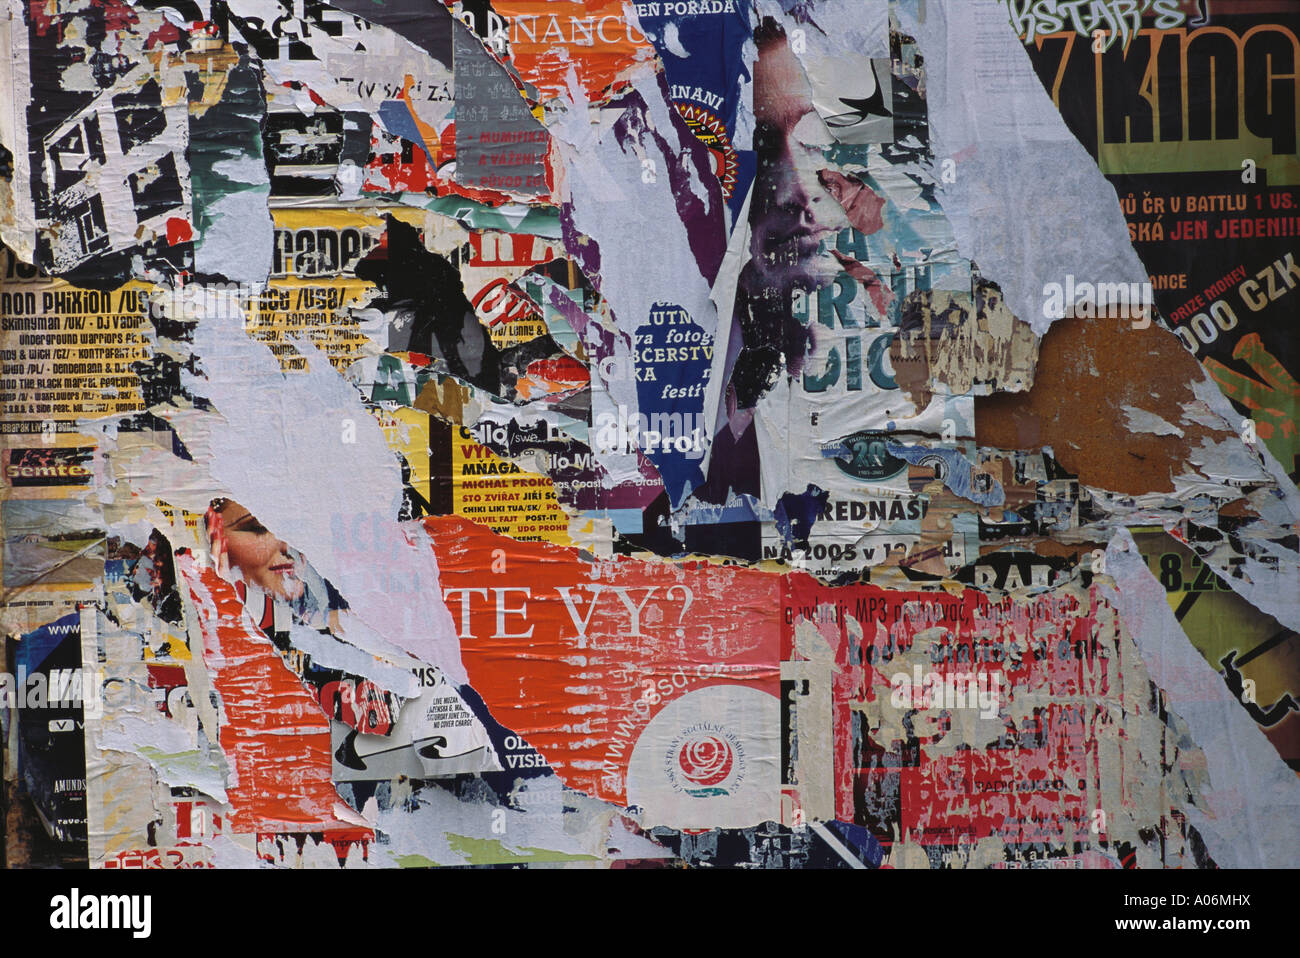 Detail of Ripped poster display Prague - Stock Image